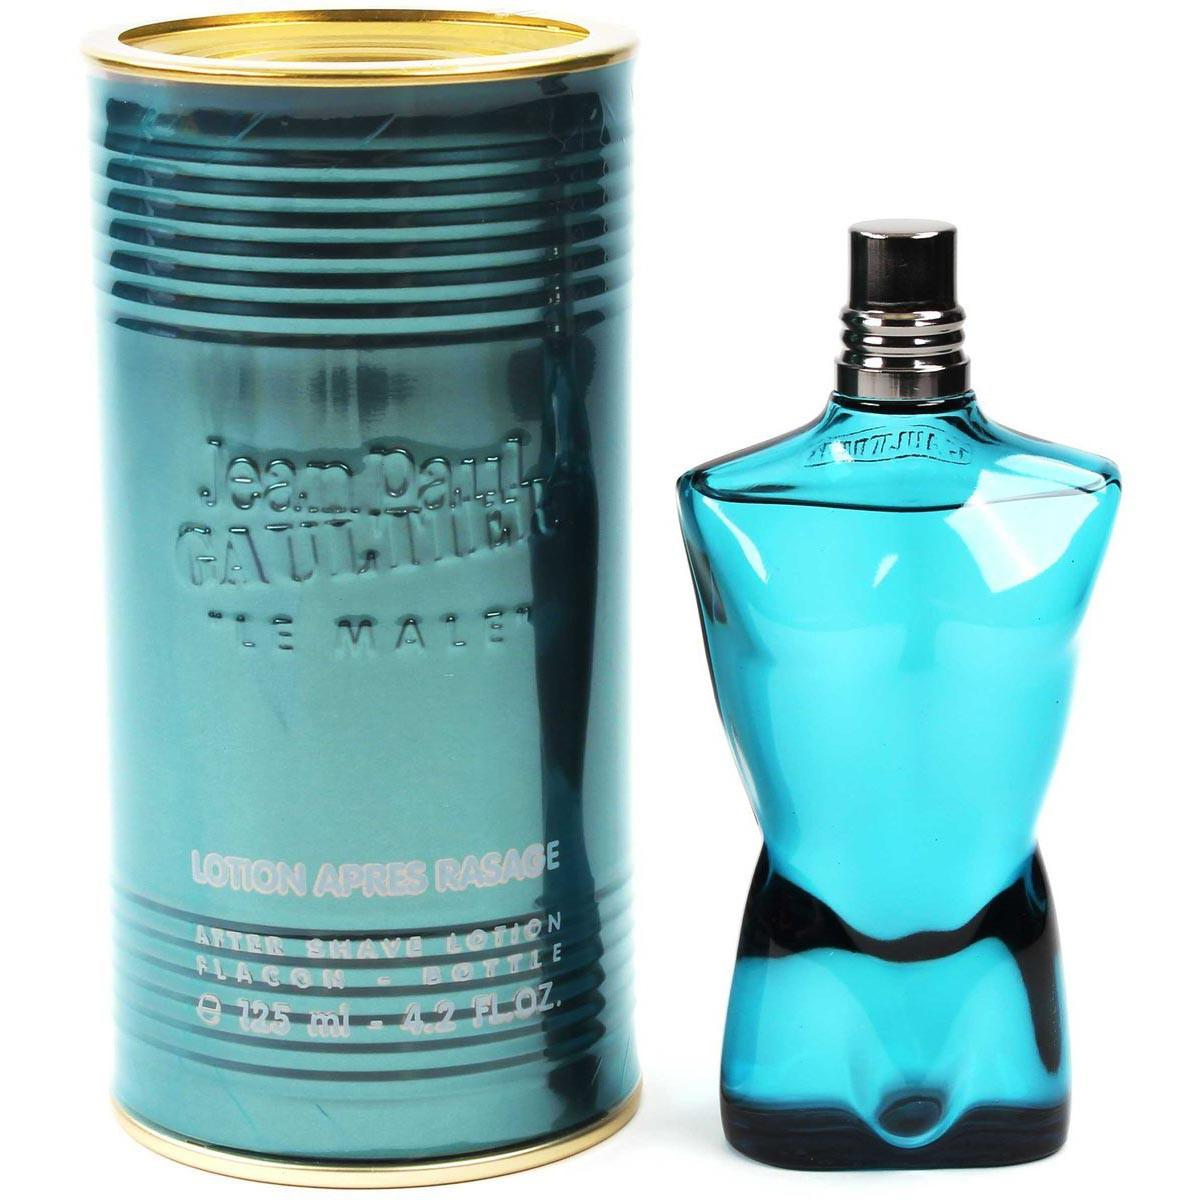 Jean Paul Gaultier Le Male Perfume In Canada Stating From Cad 41 95